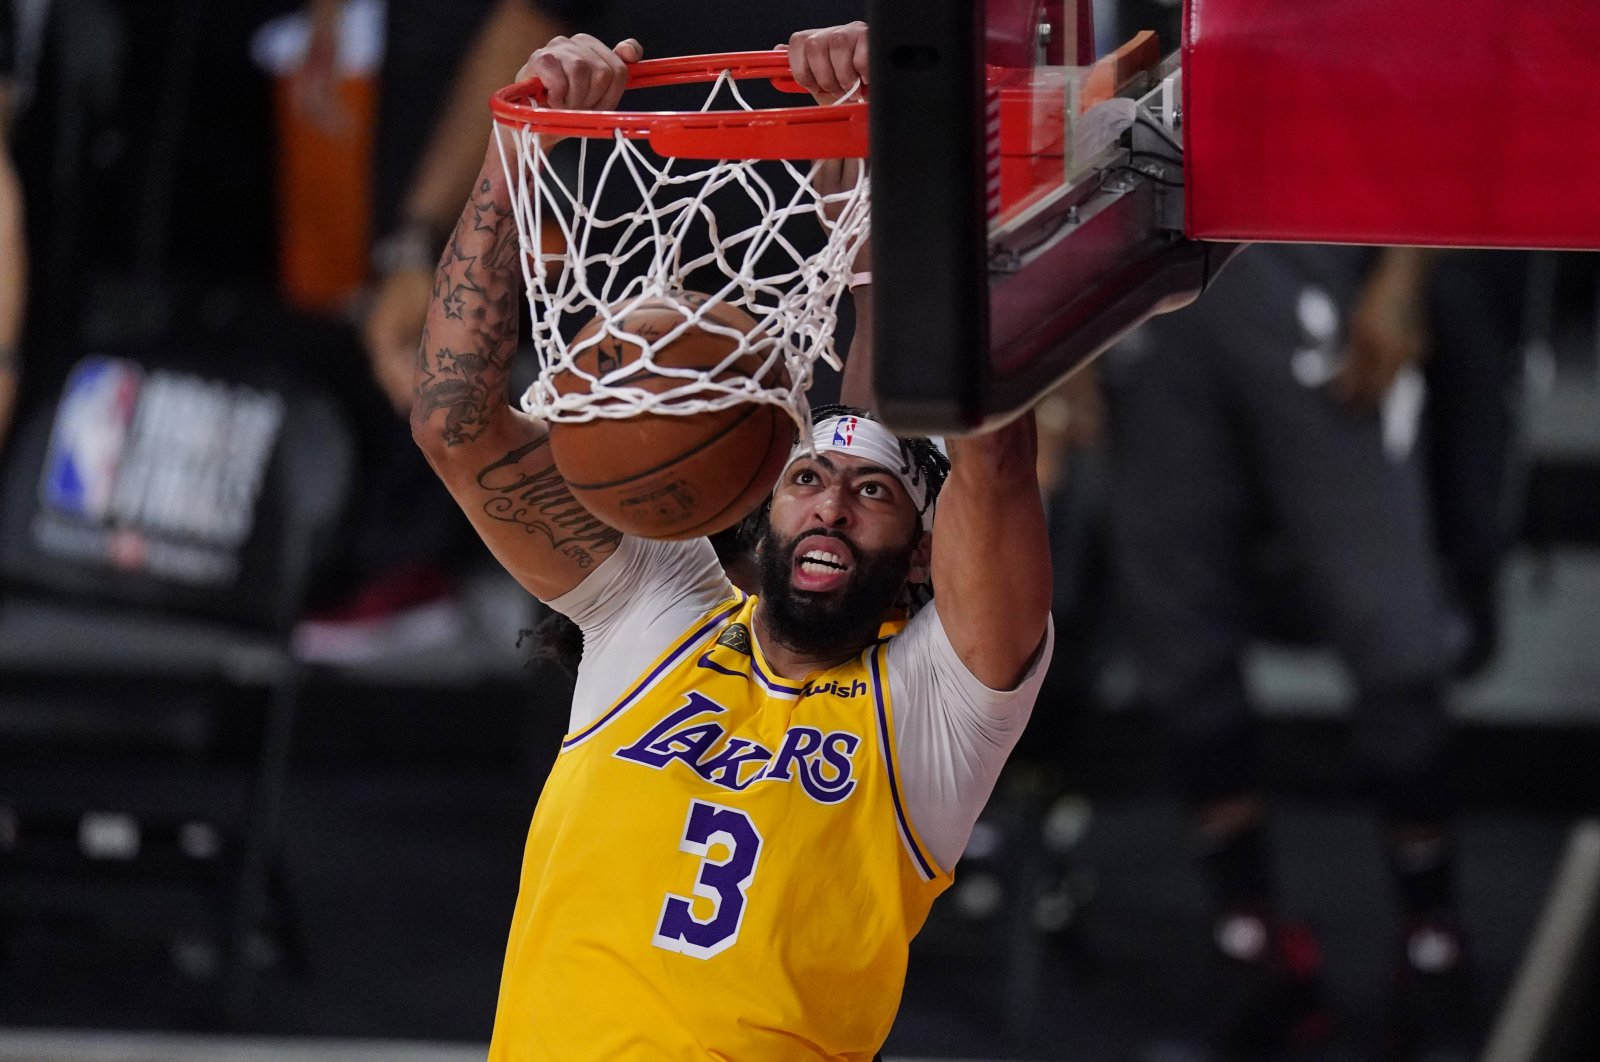 Los Angeles Lakers' Anthony Davis slams a dunk against the Miami Heat during Game 1 of NBA Finals, Lake Buena Vista, Florida, U.S., Sept. 30, 2020. (AP Photo)